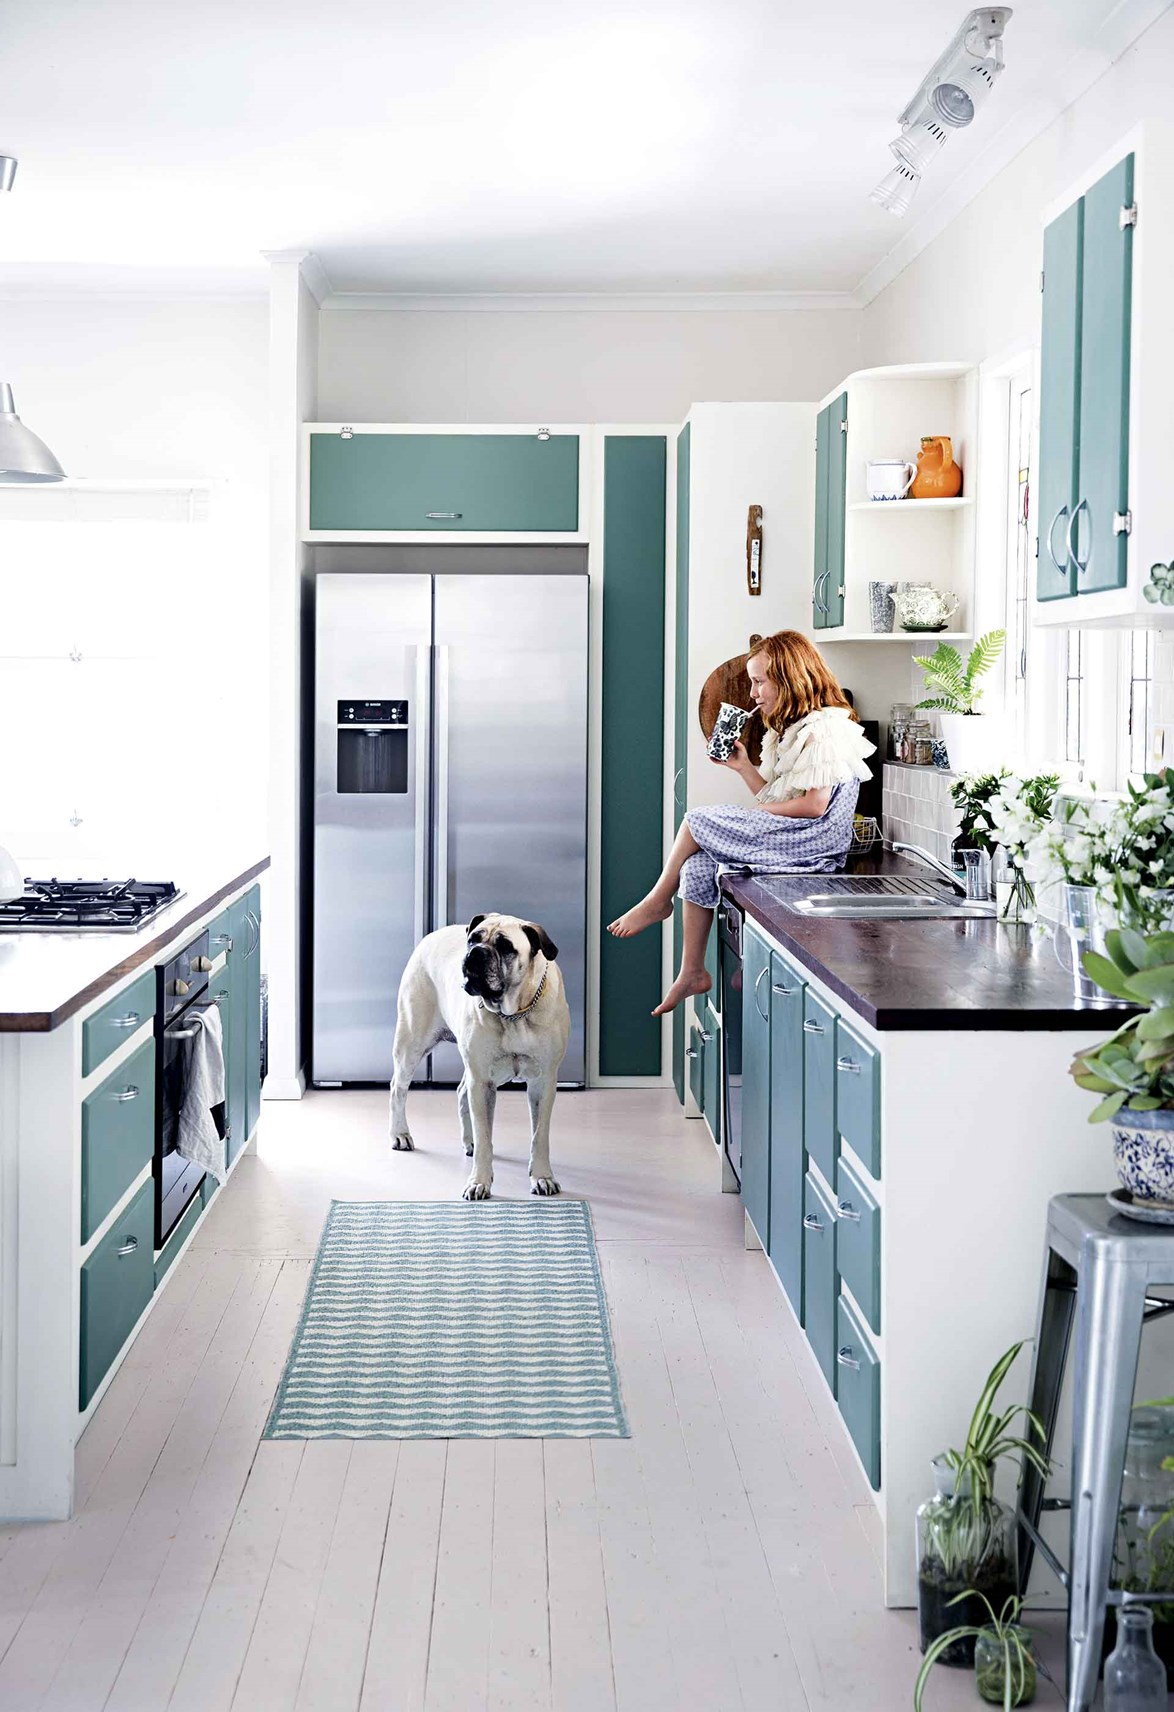 "Give your dated and daggy kitchen a fresh and contemporary new look with a [budget DIY renovation](http://www.homestolove.com.au/the-5-secrets-of-budget-kitchen-renovations-1776|target=""_blank""). [Painting your kitchen cabinets](https://www.homestolove.com.au/how-to-paint-kitchen-cupboards-6272